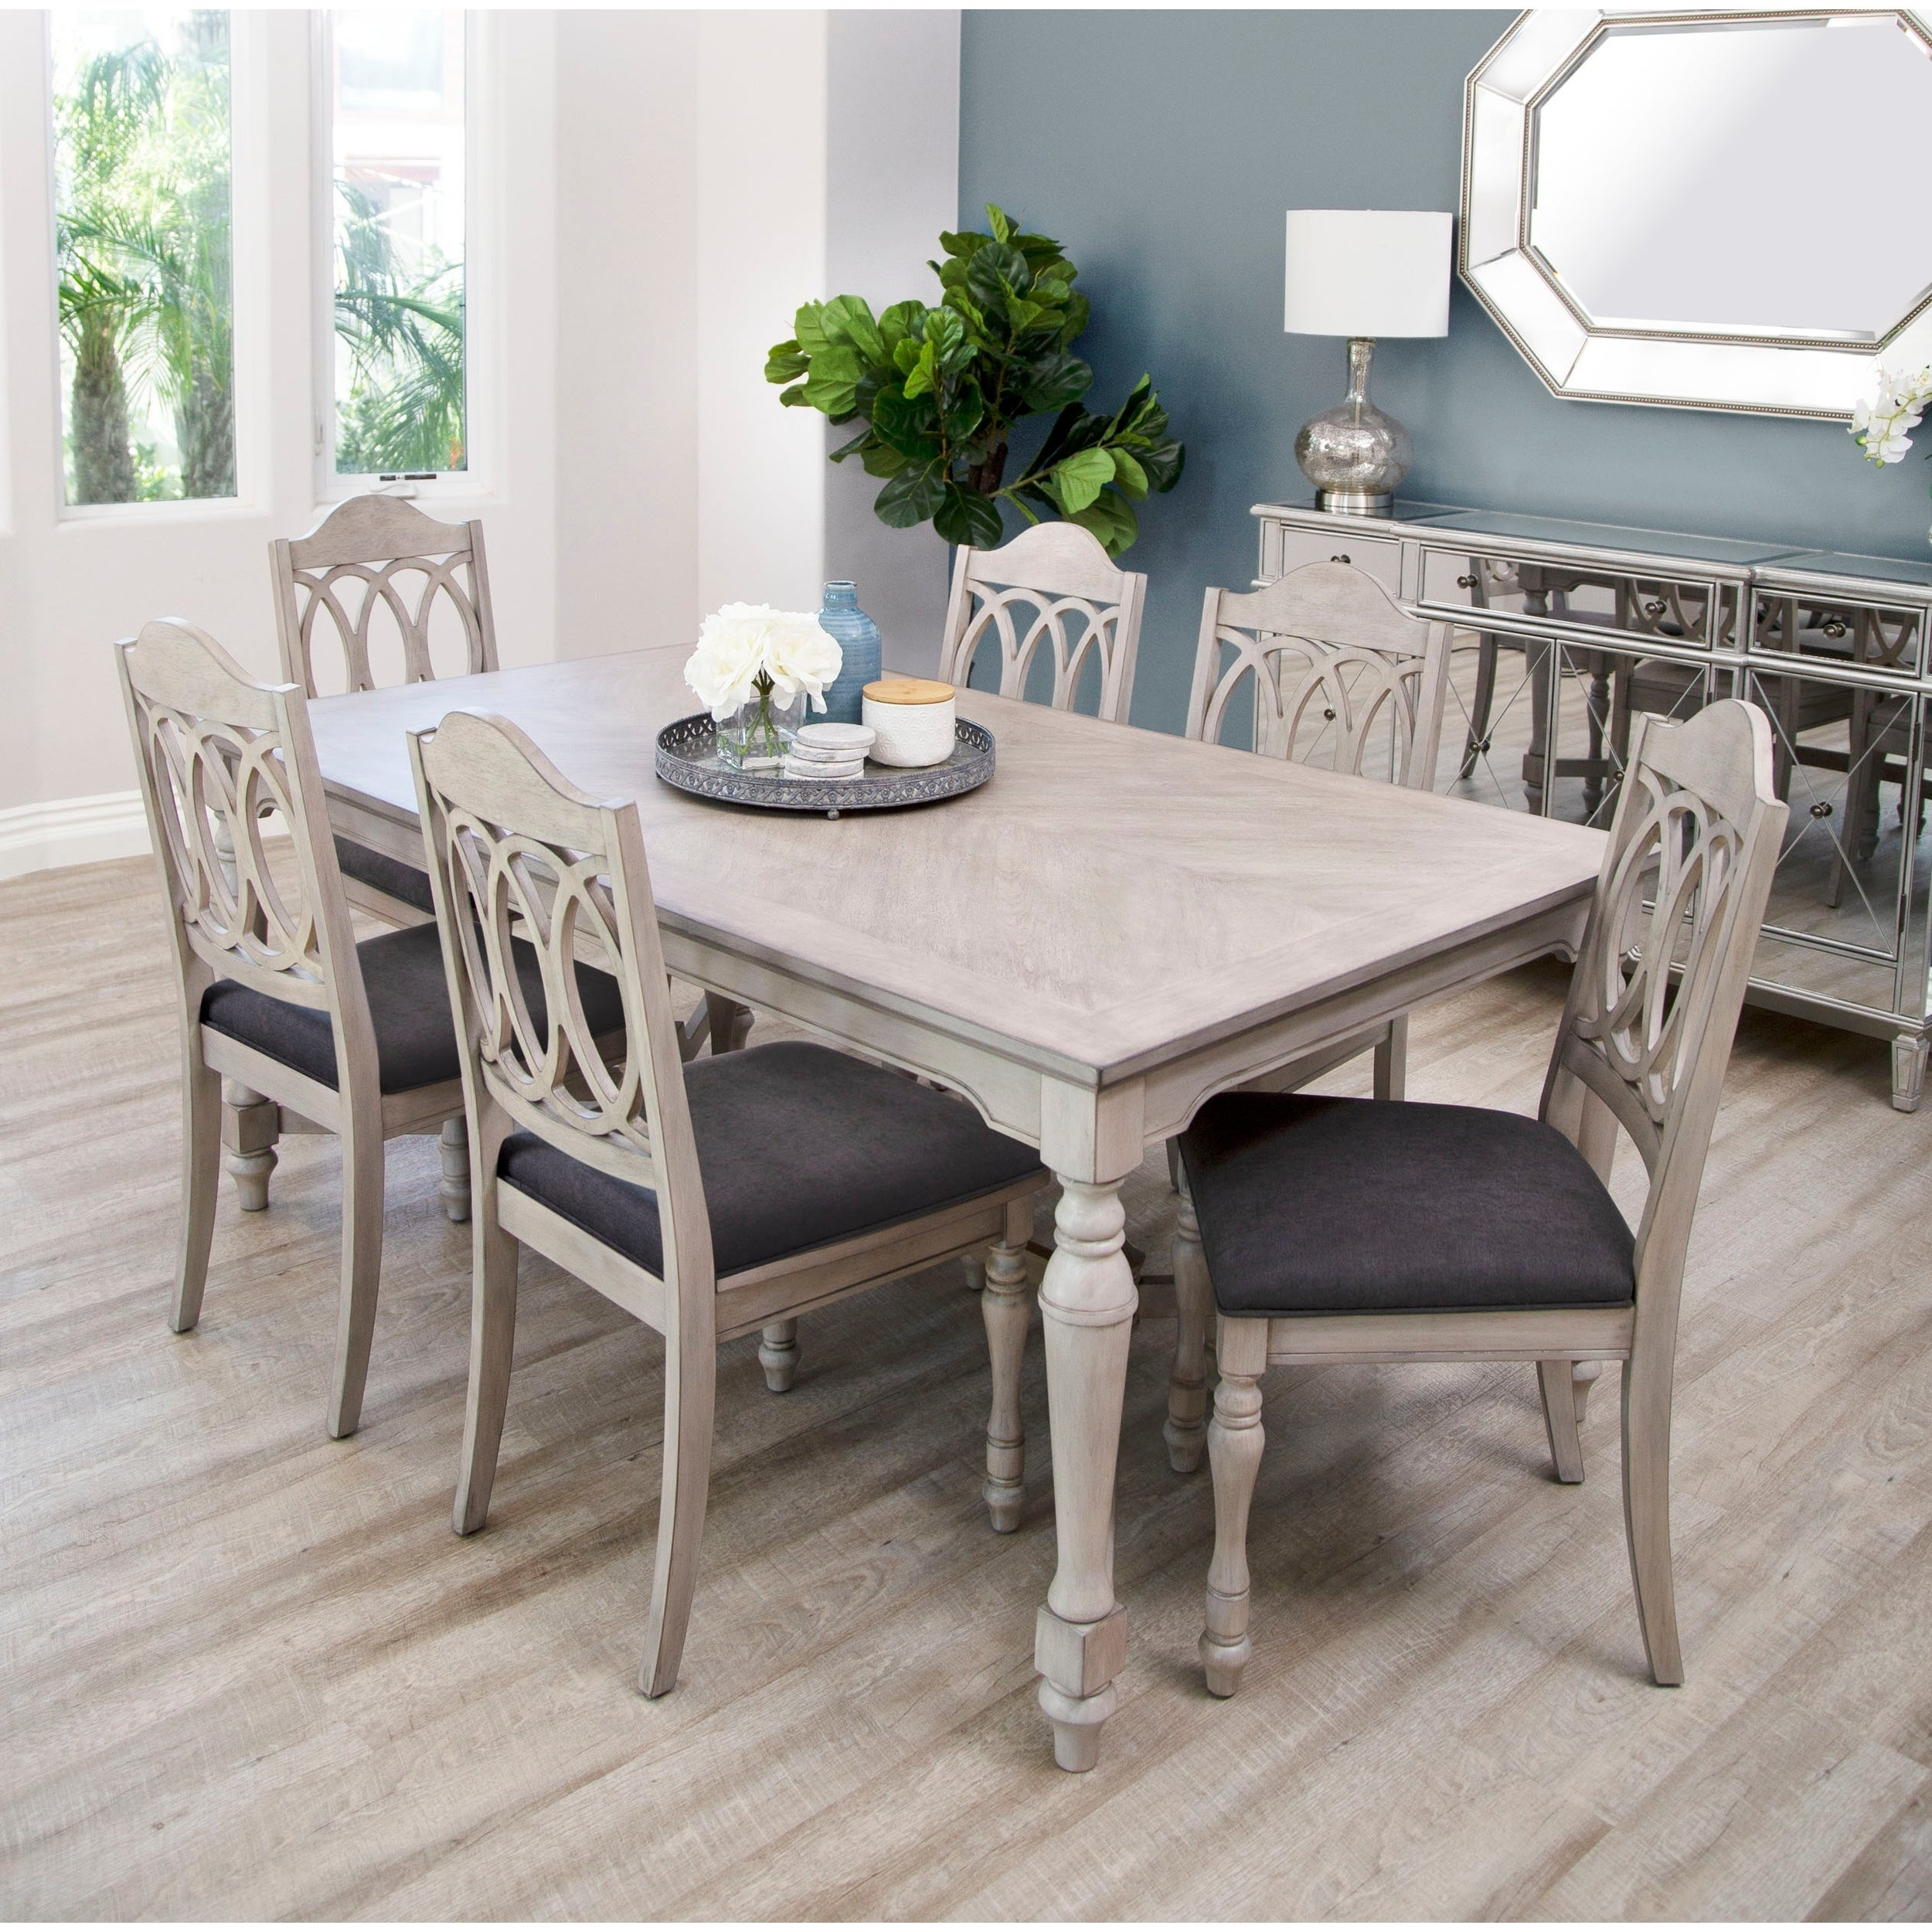 Overstock.com & Buy Farmhouse Kitchen \u0026 Dining Room Tables Online at Overstock | Our ...